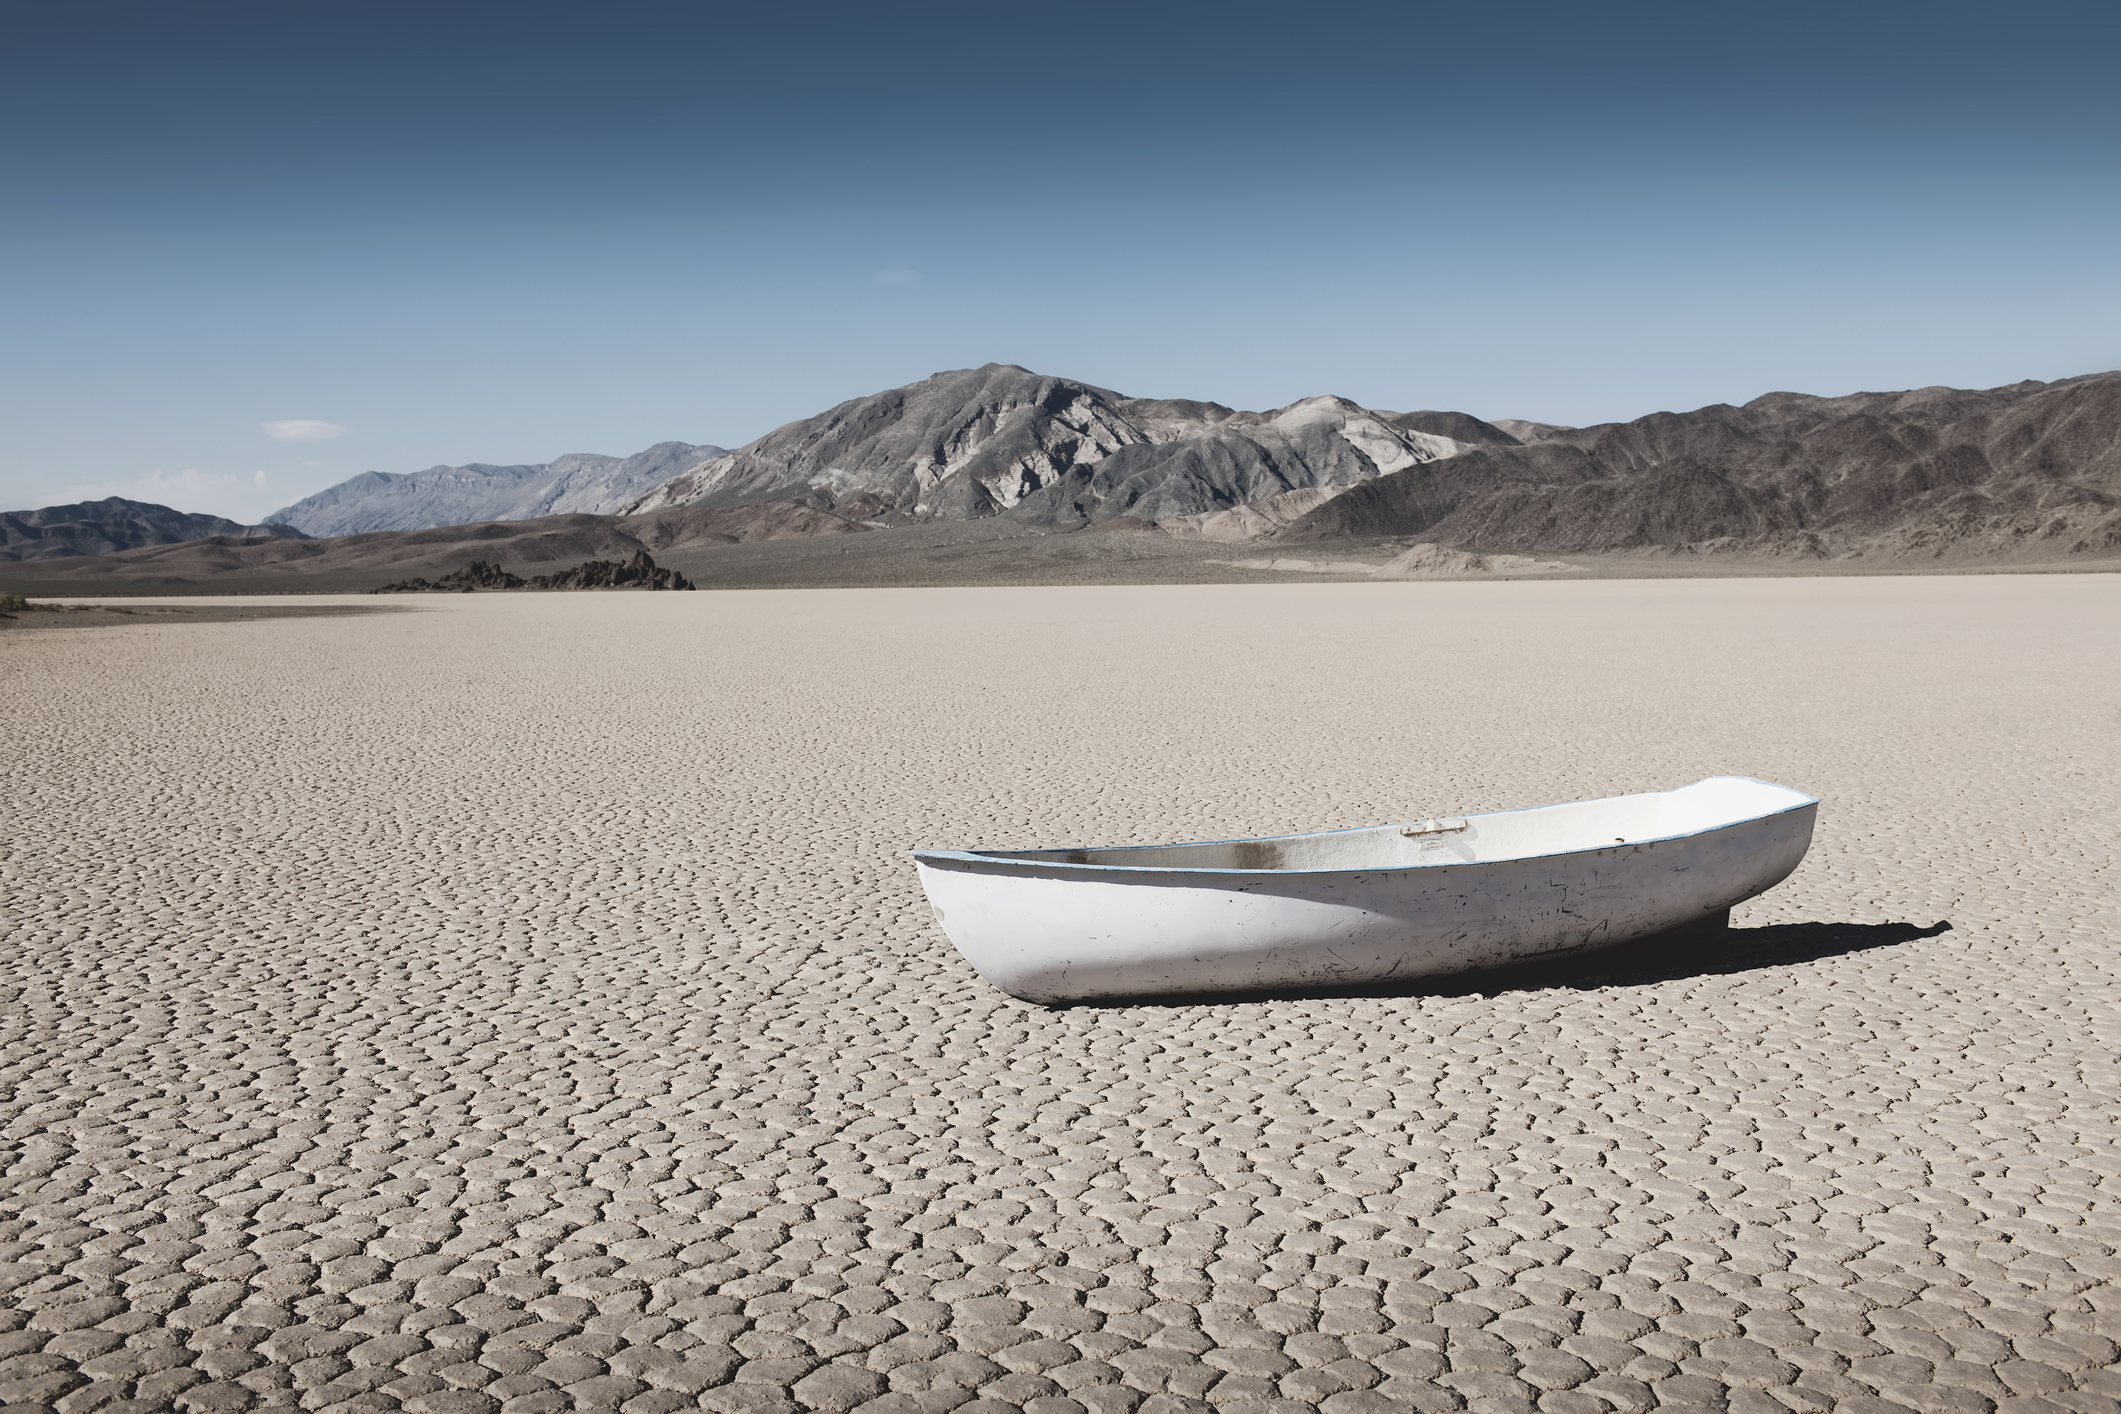 Boat in desert field